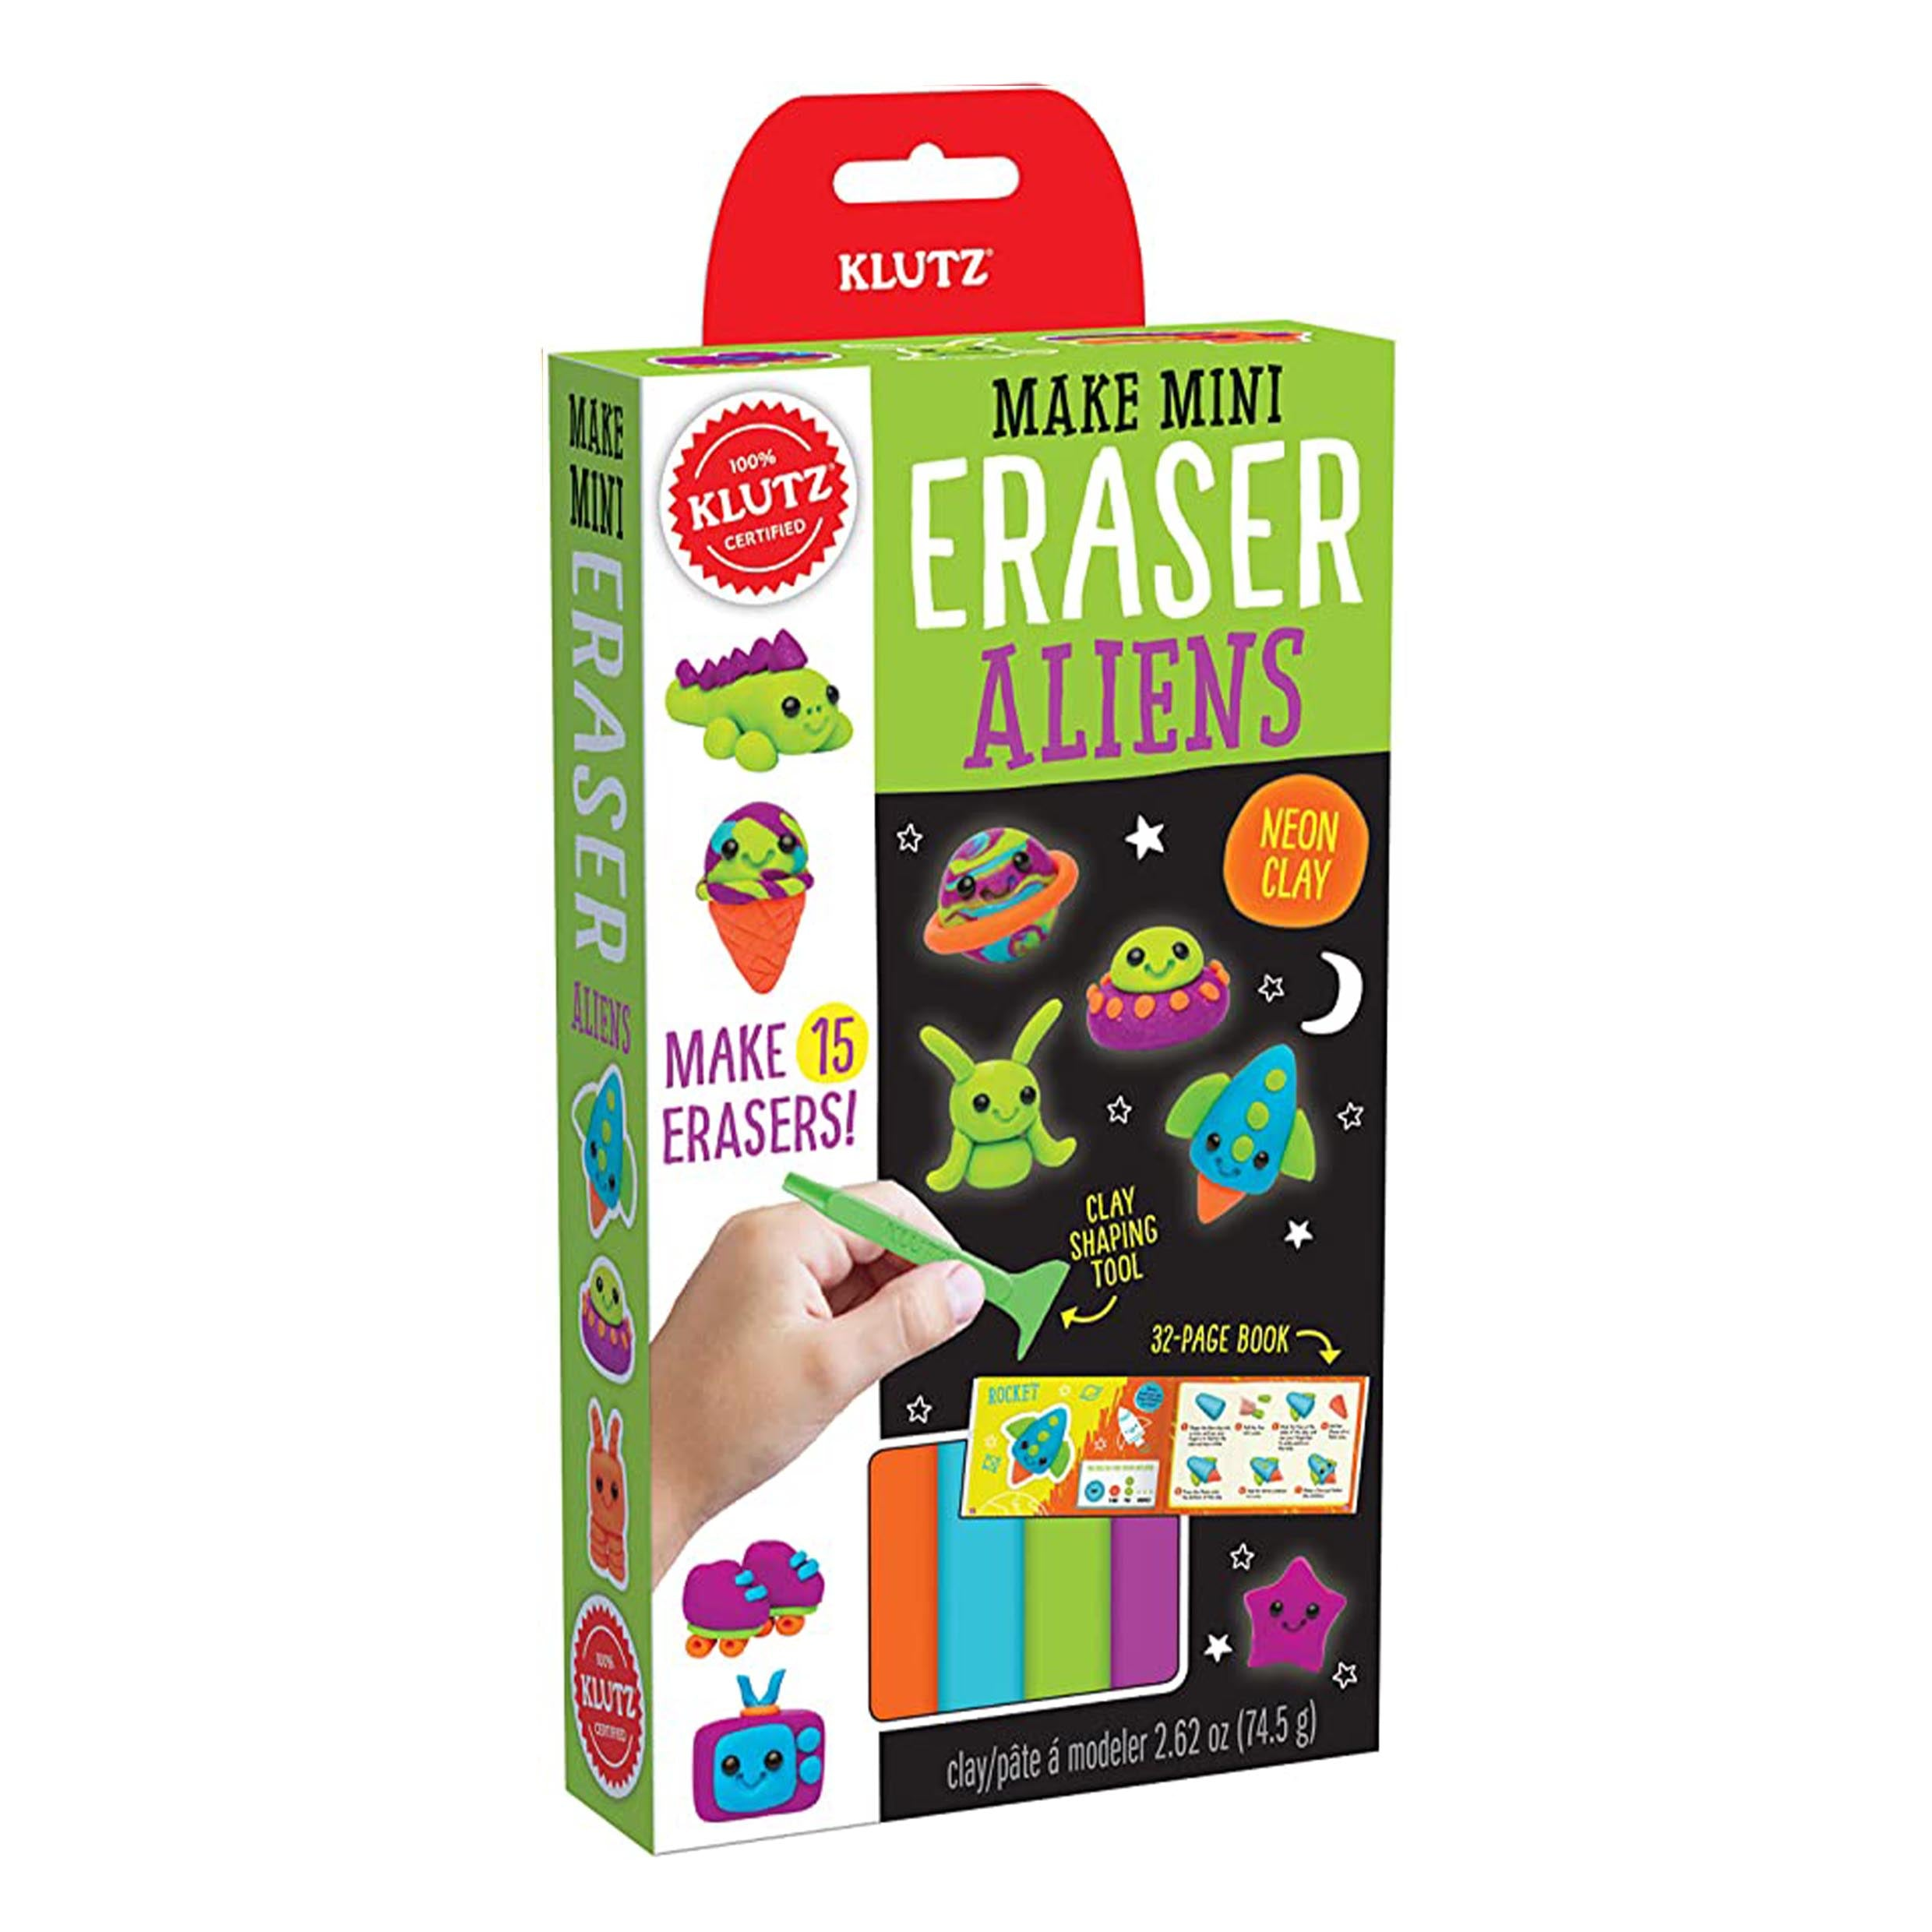 Make Mini Eraser Kits - by Klutz - K. A. Artist Shop